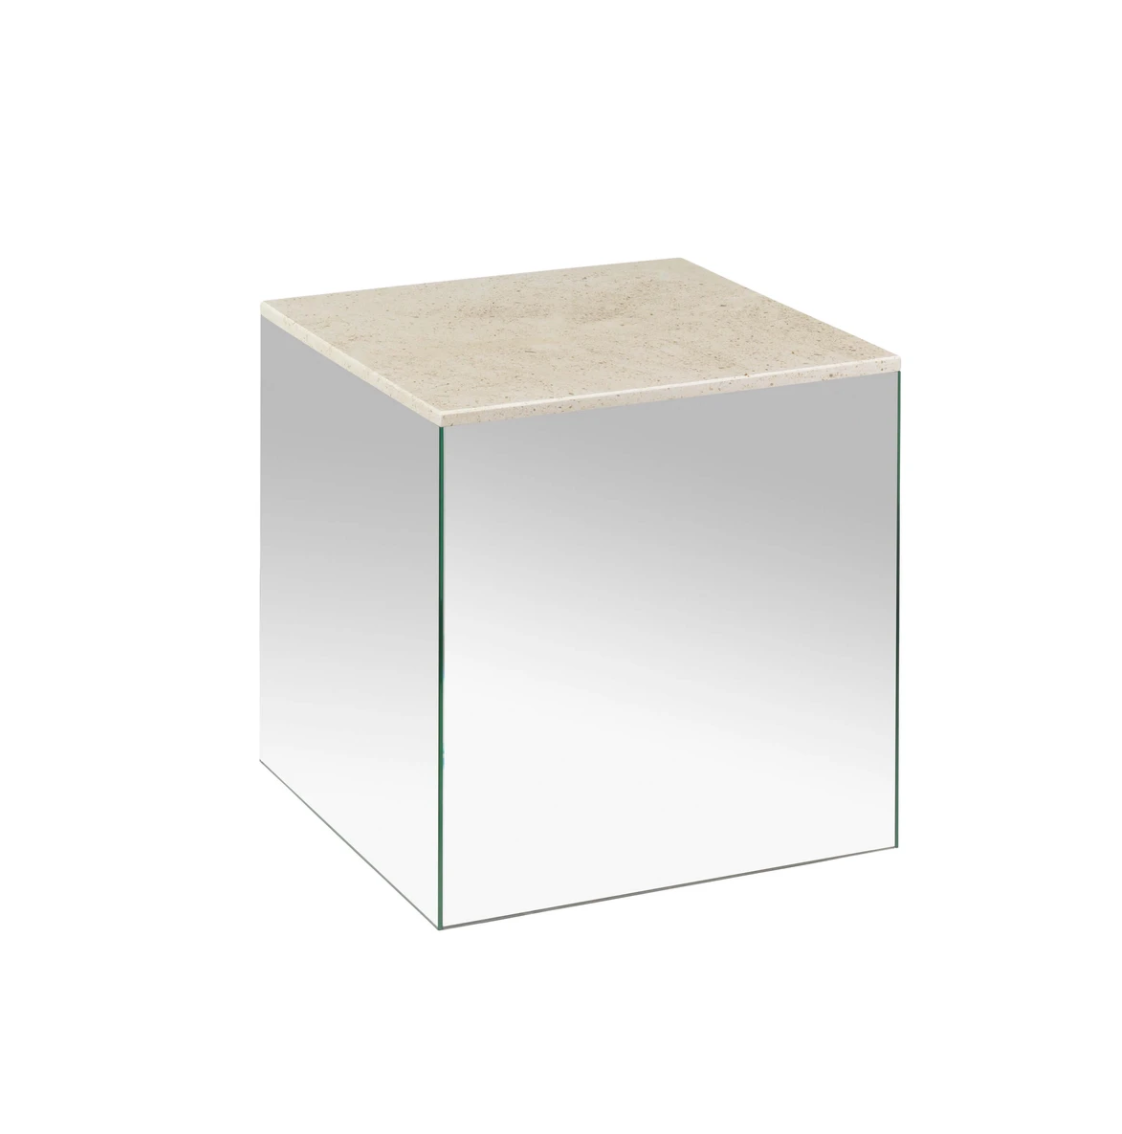 "Small Mirror Table With Mocca Marble Top 16.5"" Cube"